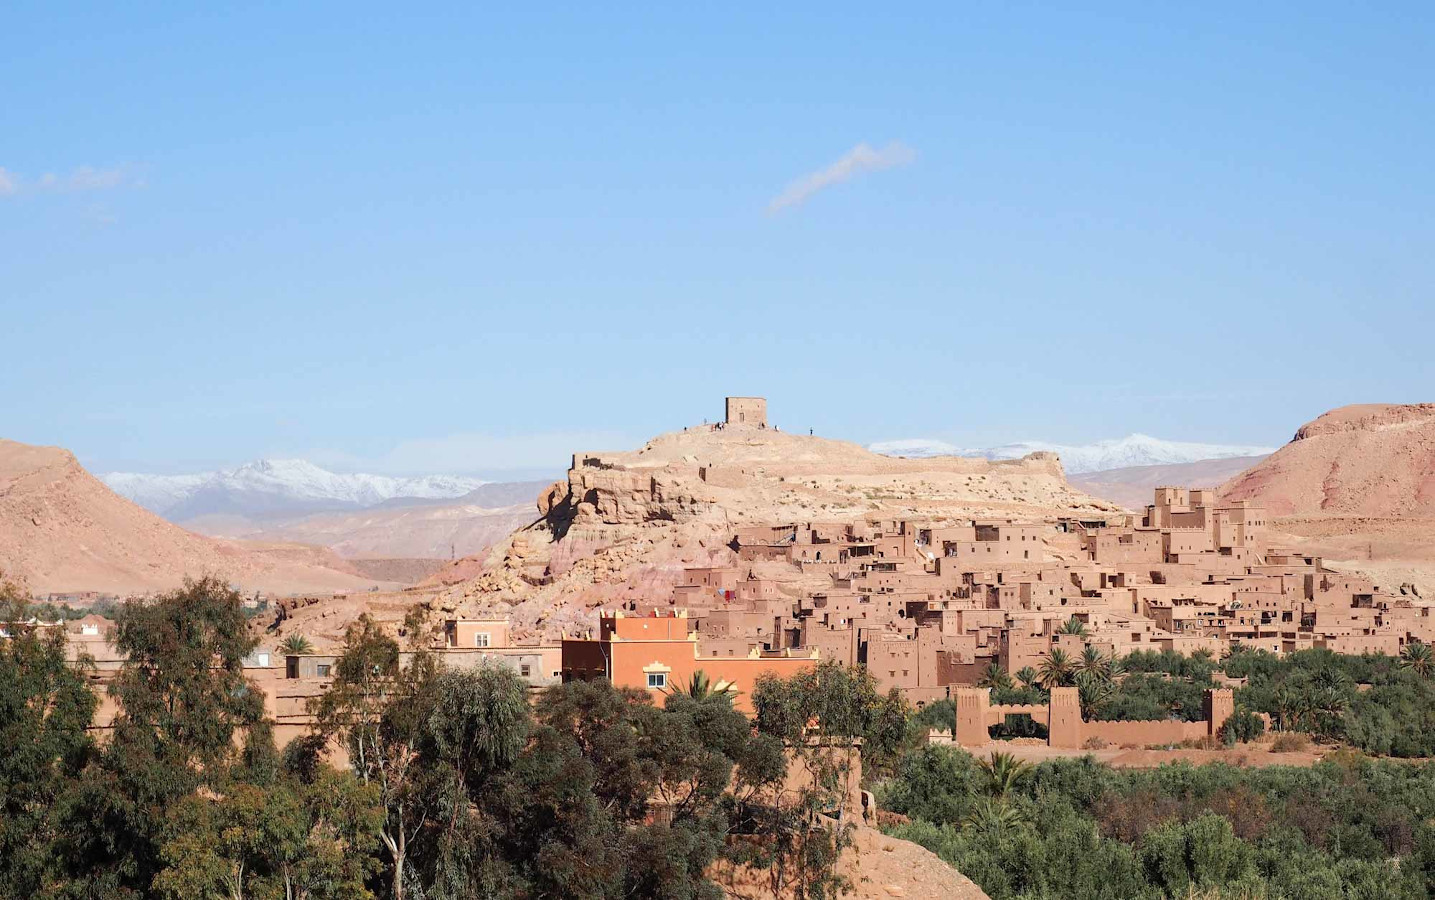 High Atlas Mountains - one of the things to see during your 1 week in Morocco trip